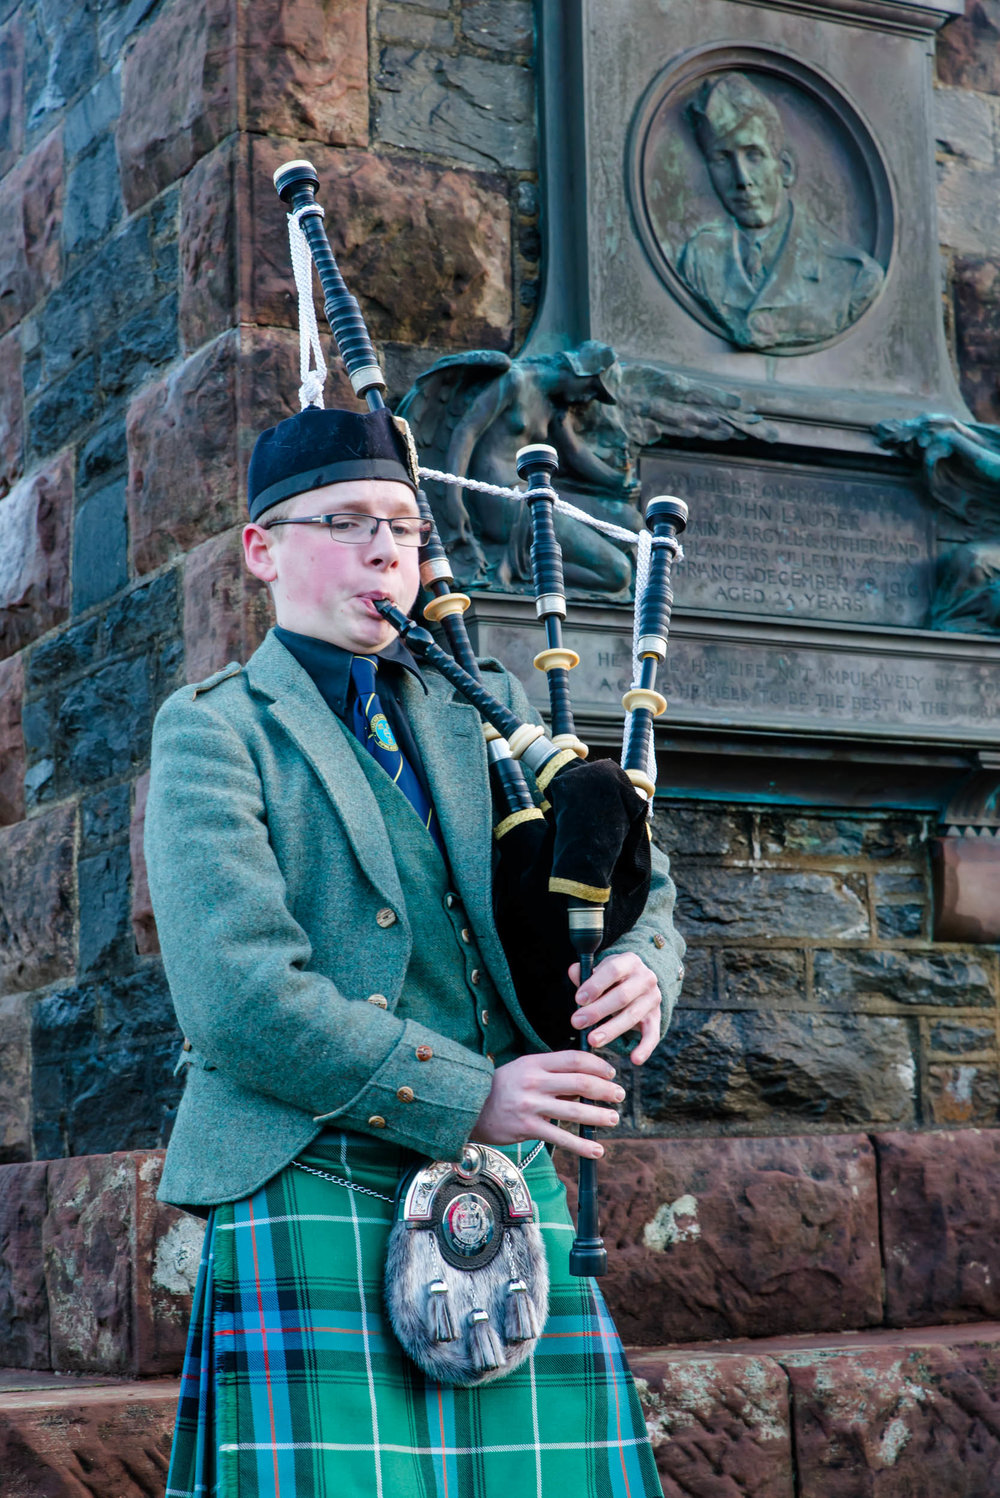 Local-Bagpipes-Argyll-7672.jpg